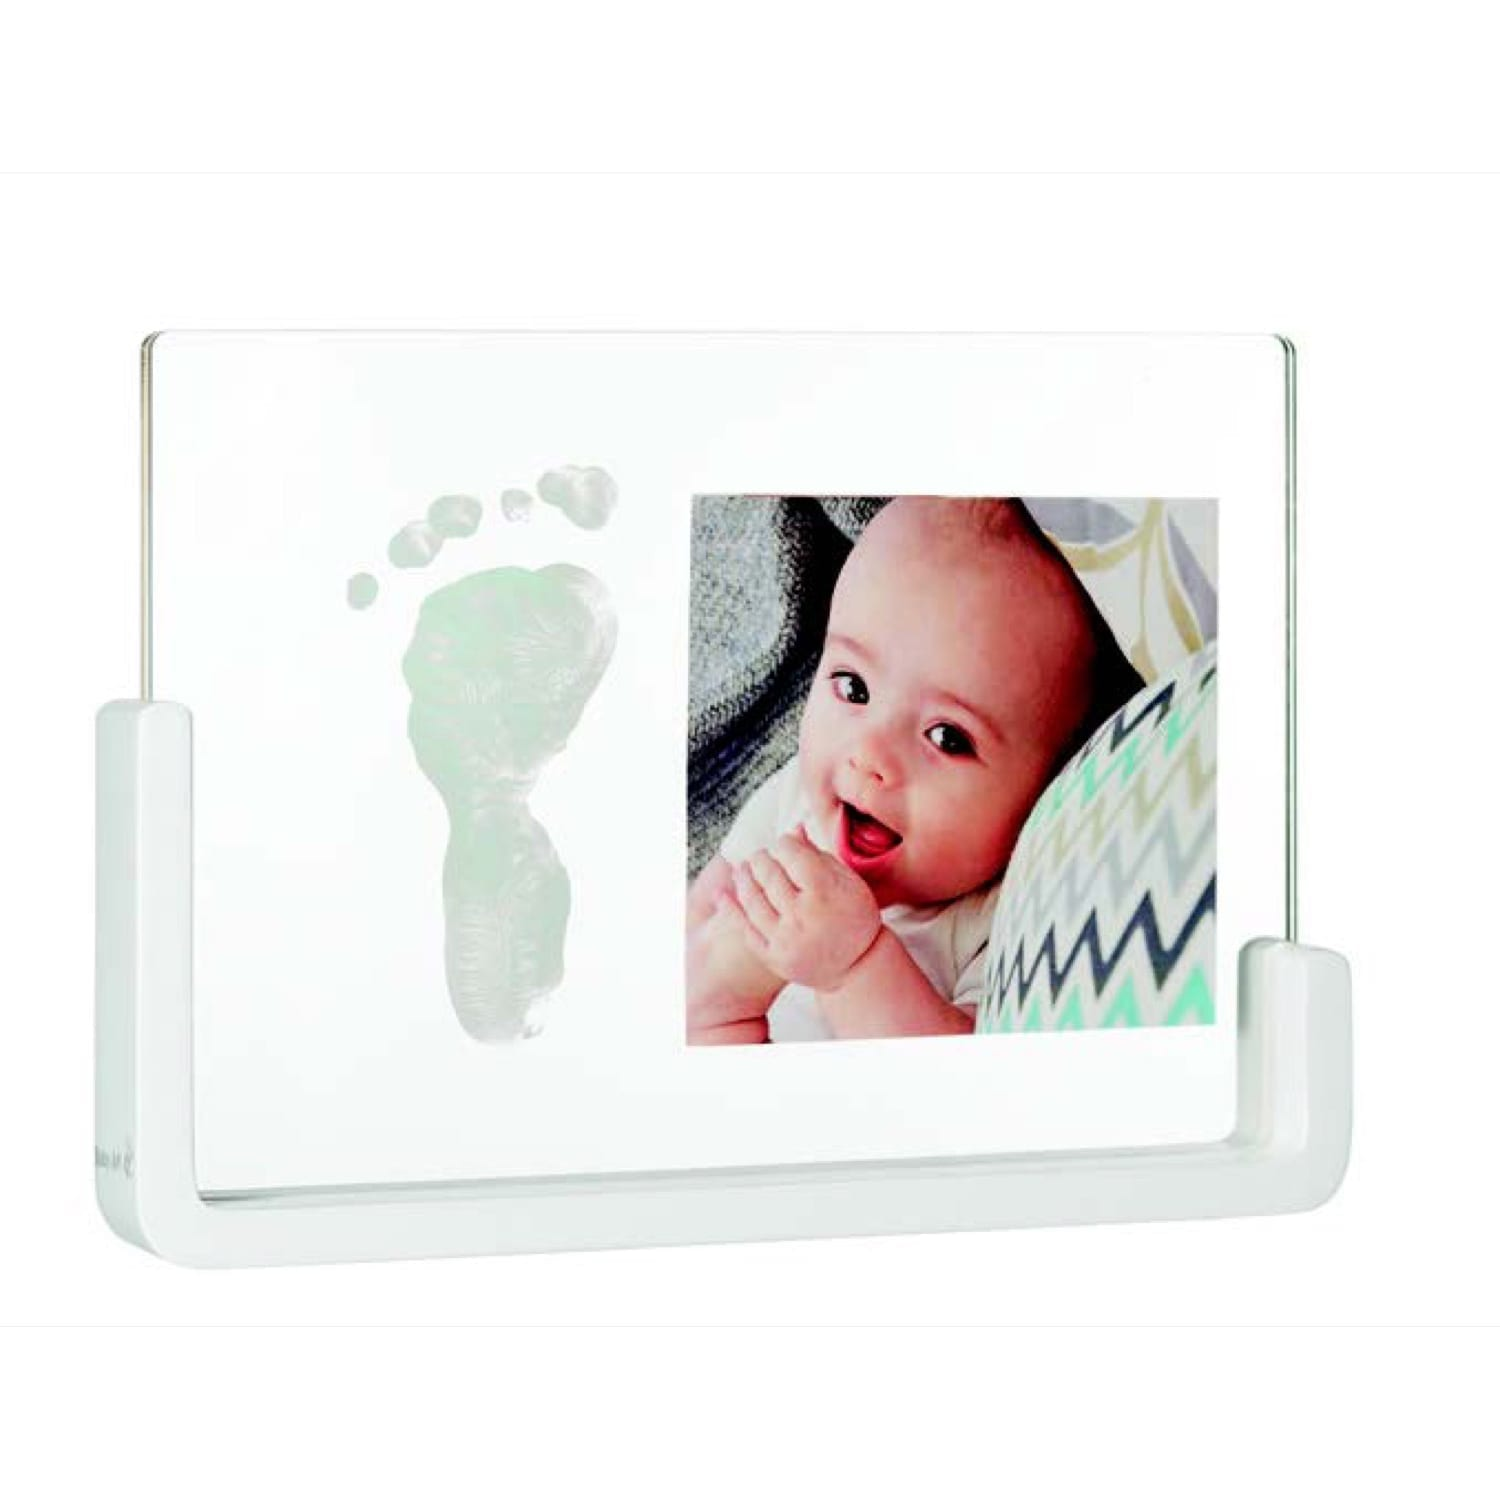 Baby Art – Transparent Frame Clay product image